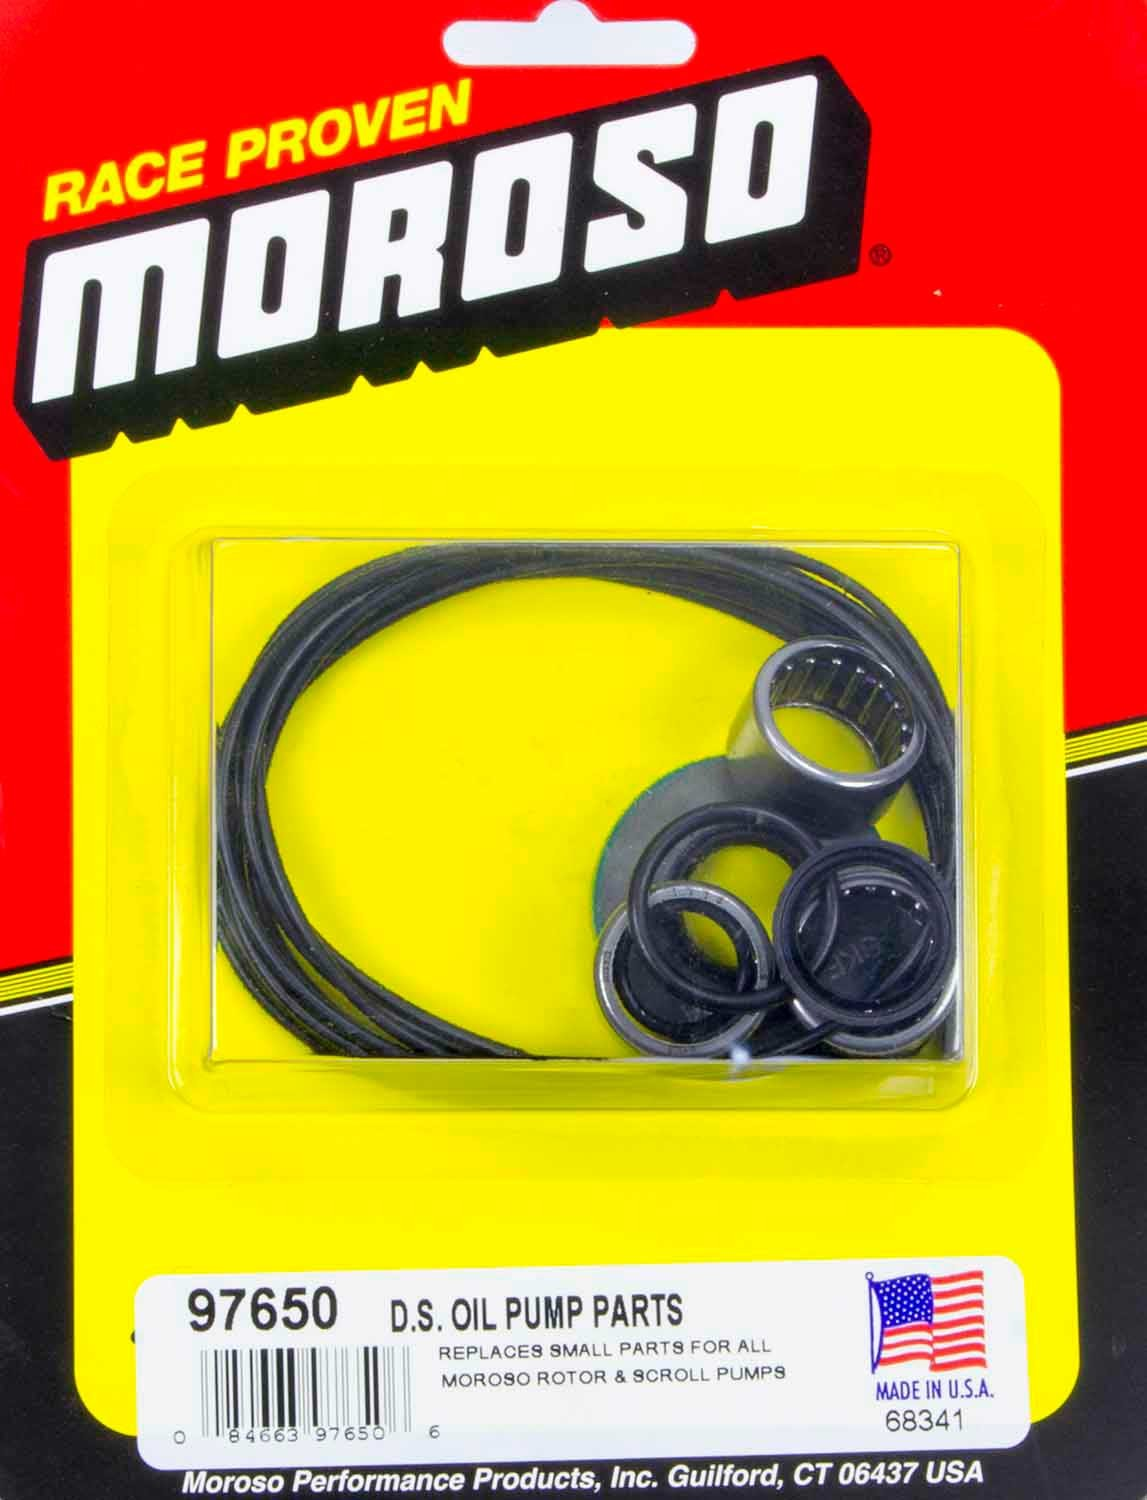 Moroso Replacement Parts Kit For D/S Pump